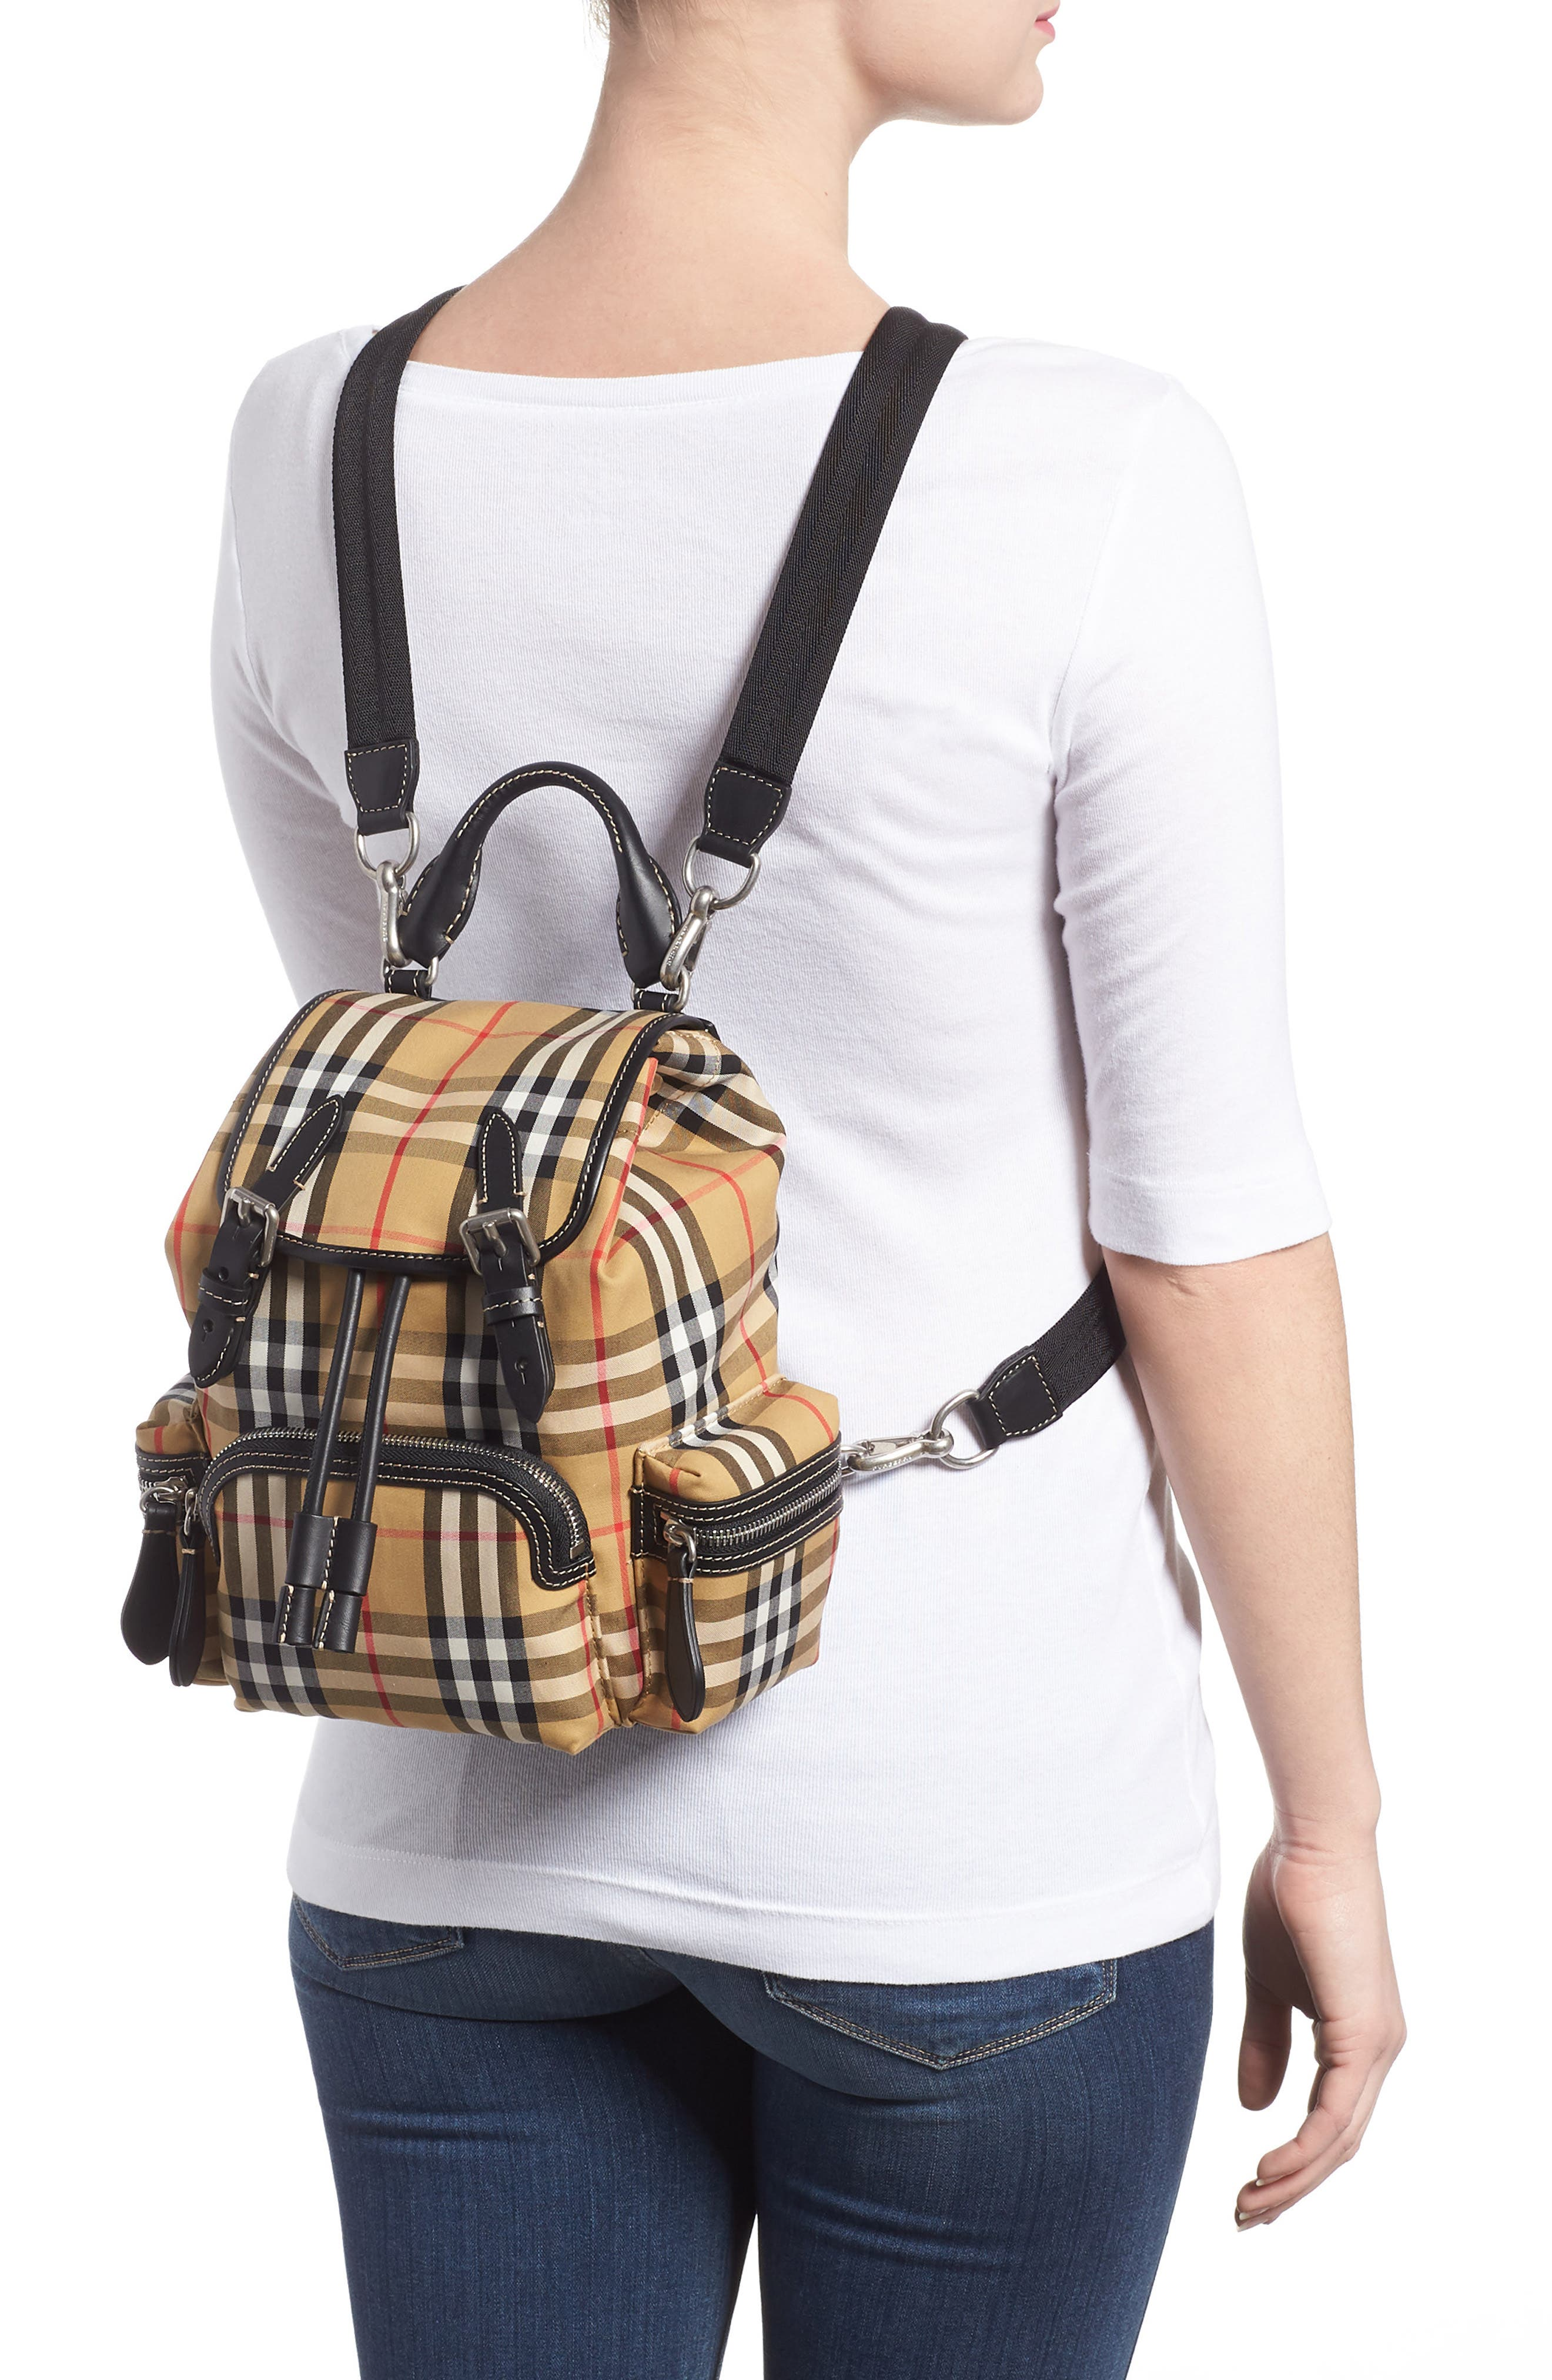 Small Rucksack Check Cotton Backpack,                             Alternate thumbnail 2, color,                             ANTIQUE YELLOW